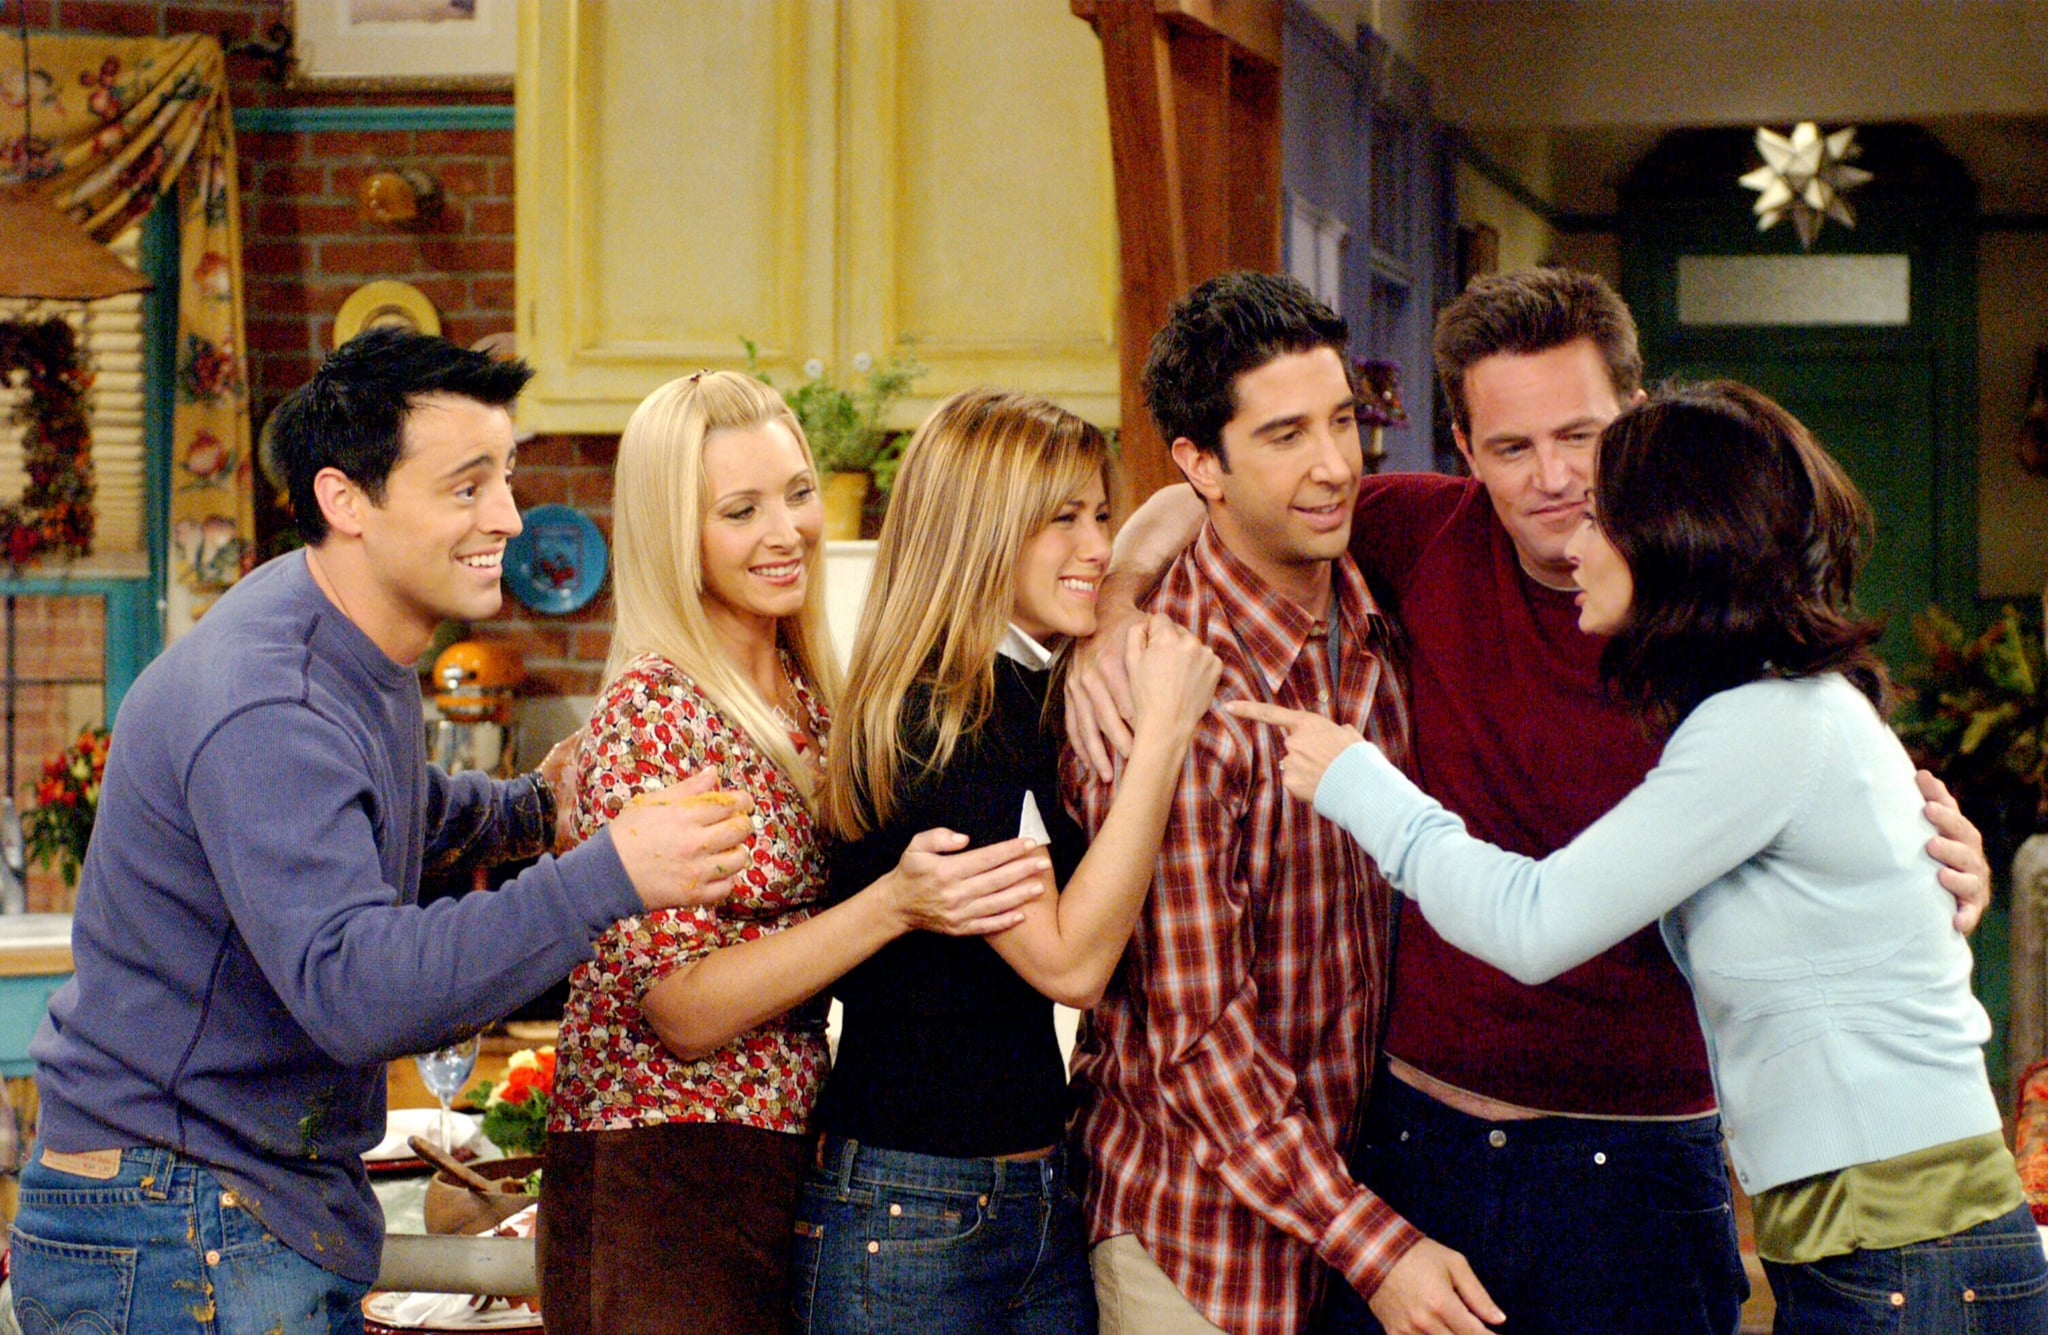 FRIENDS, Matt LeBlanc, Lisa Kudrow, Jennifer Aniston, David Schwimmer, Matthew Perry, Courteney Cox, 'The One With The Late Thanksgiving', (Season 10, epis. #226), 1994-2004,  Warner Bros. / Courtesy: Everett Collection